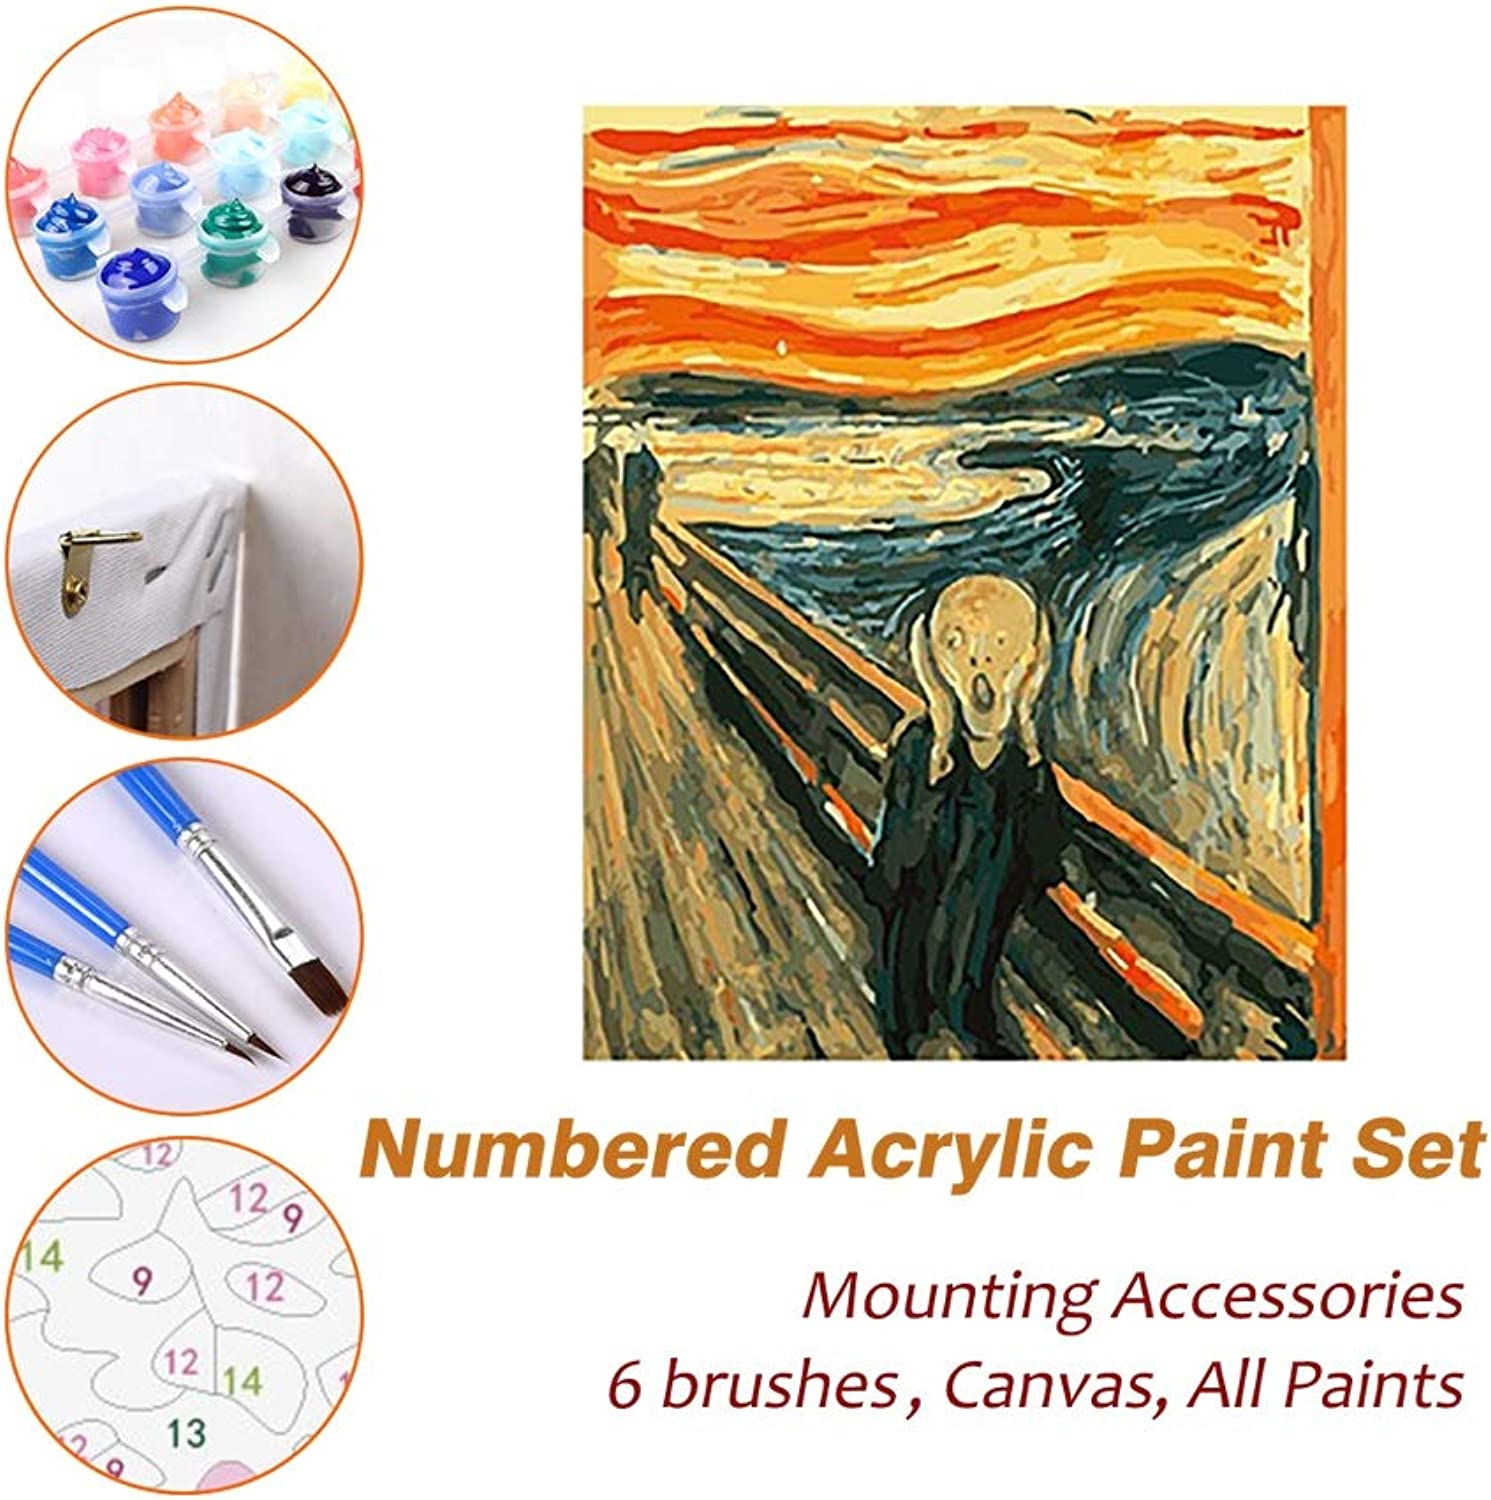 Puzzle House Paint Max Paint By Numbers Kits For Kids Adults Beginner Teens Pine Framed DIY Oil Acrylic Painting Paint Art Brush Sets, Van Gogh The Fear Abstract Painting 531